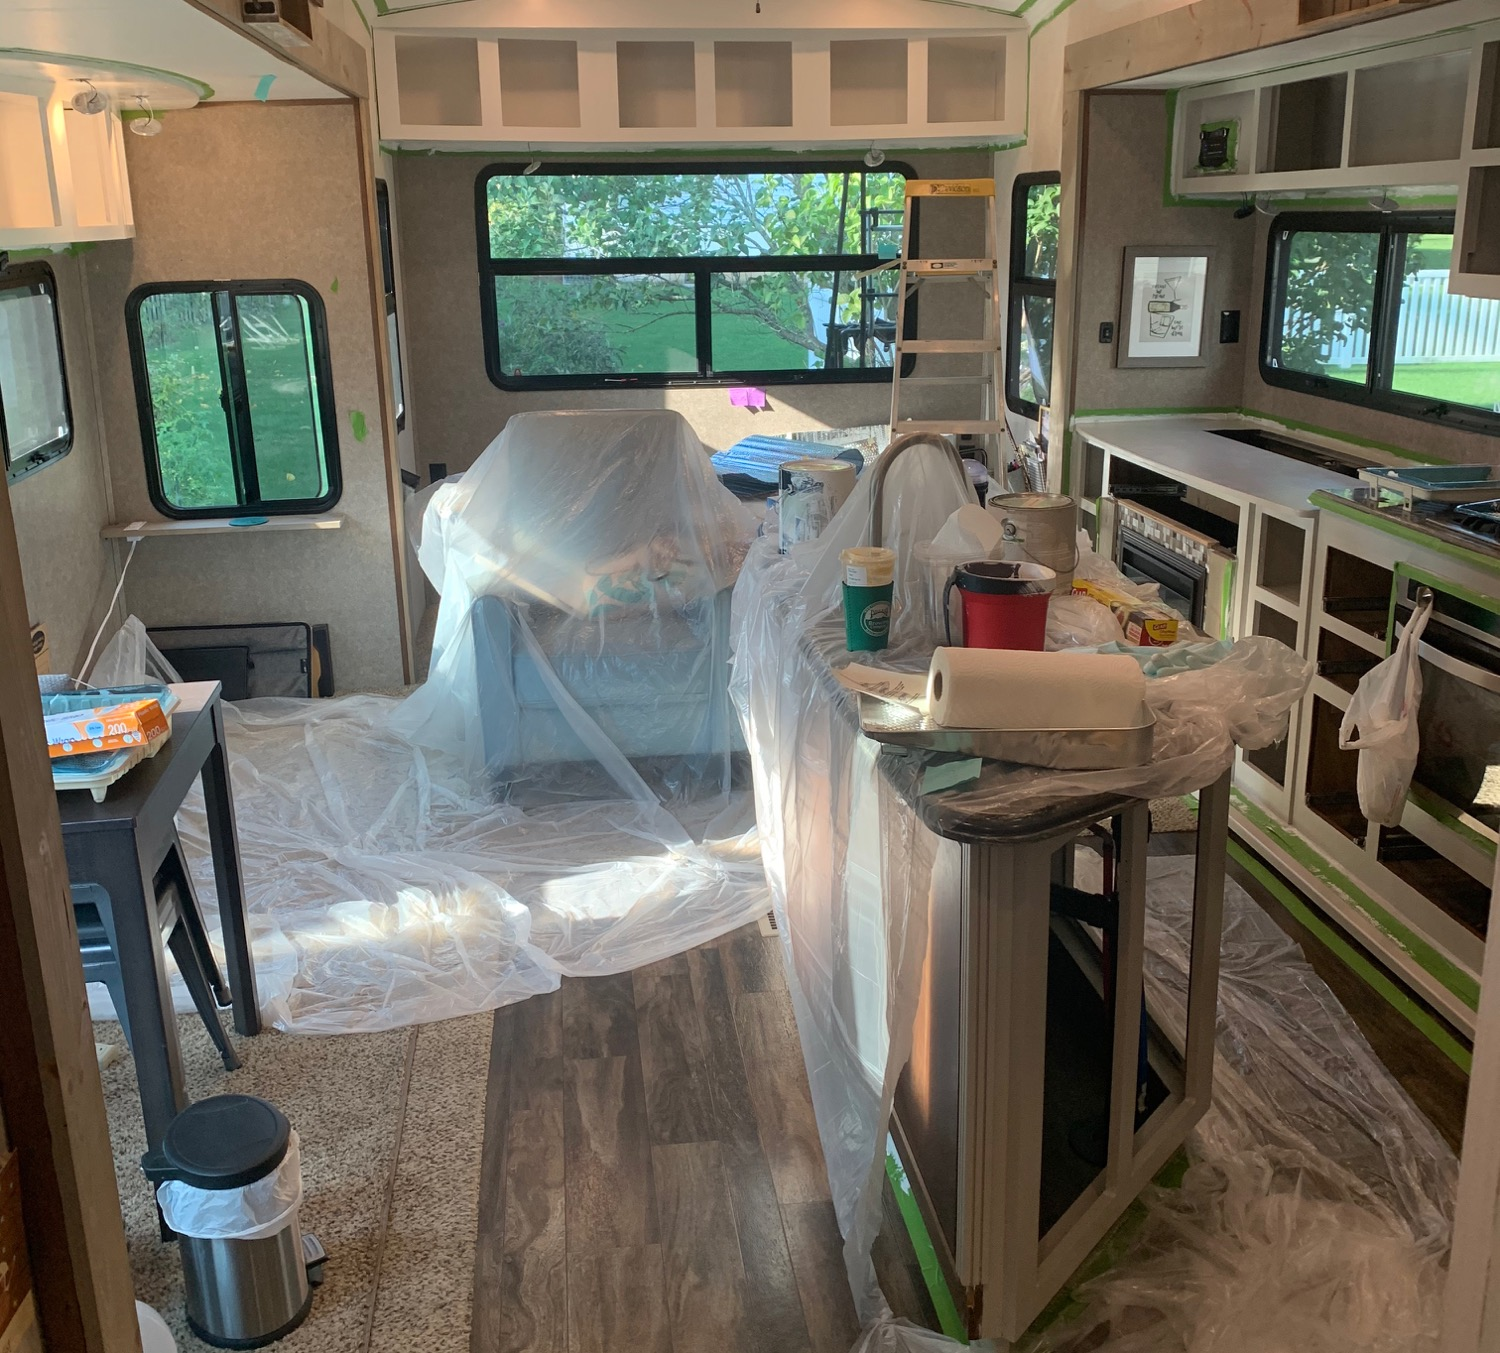 RV Makeover in progress: Painting interior cabinets white and light gray